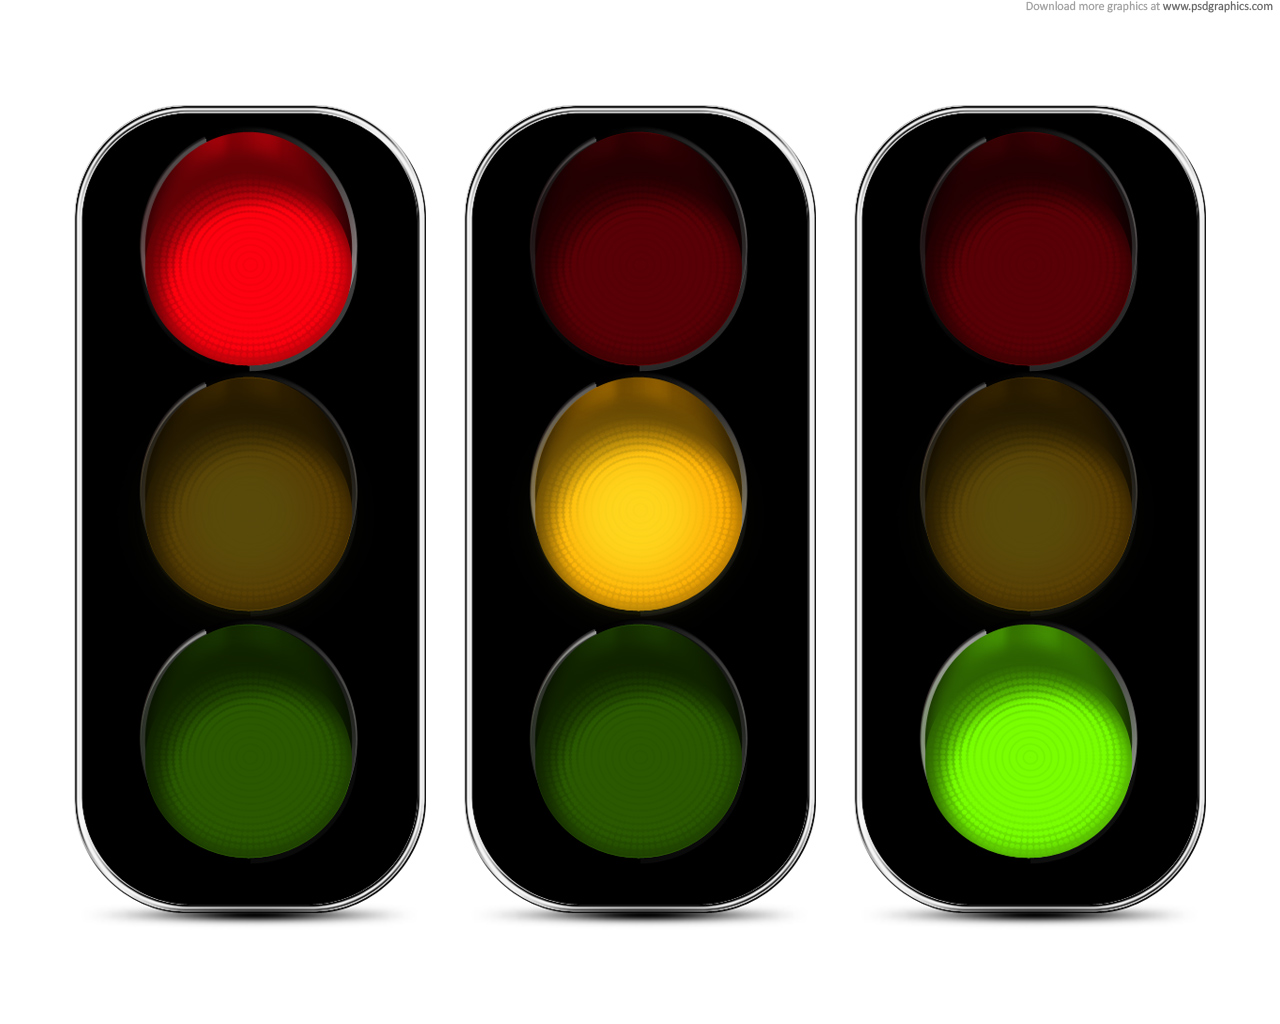 Green Stop Light Clipart   Clipart Panda   Free Clipart Images